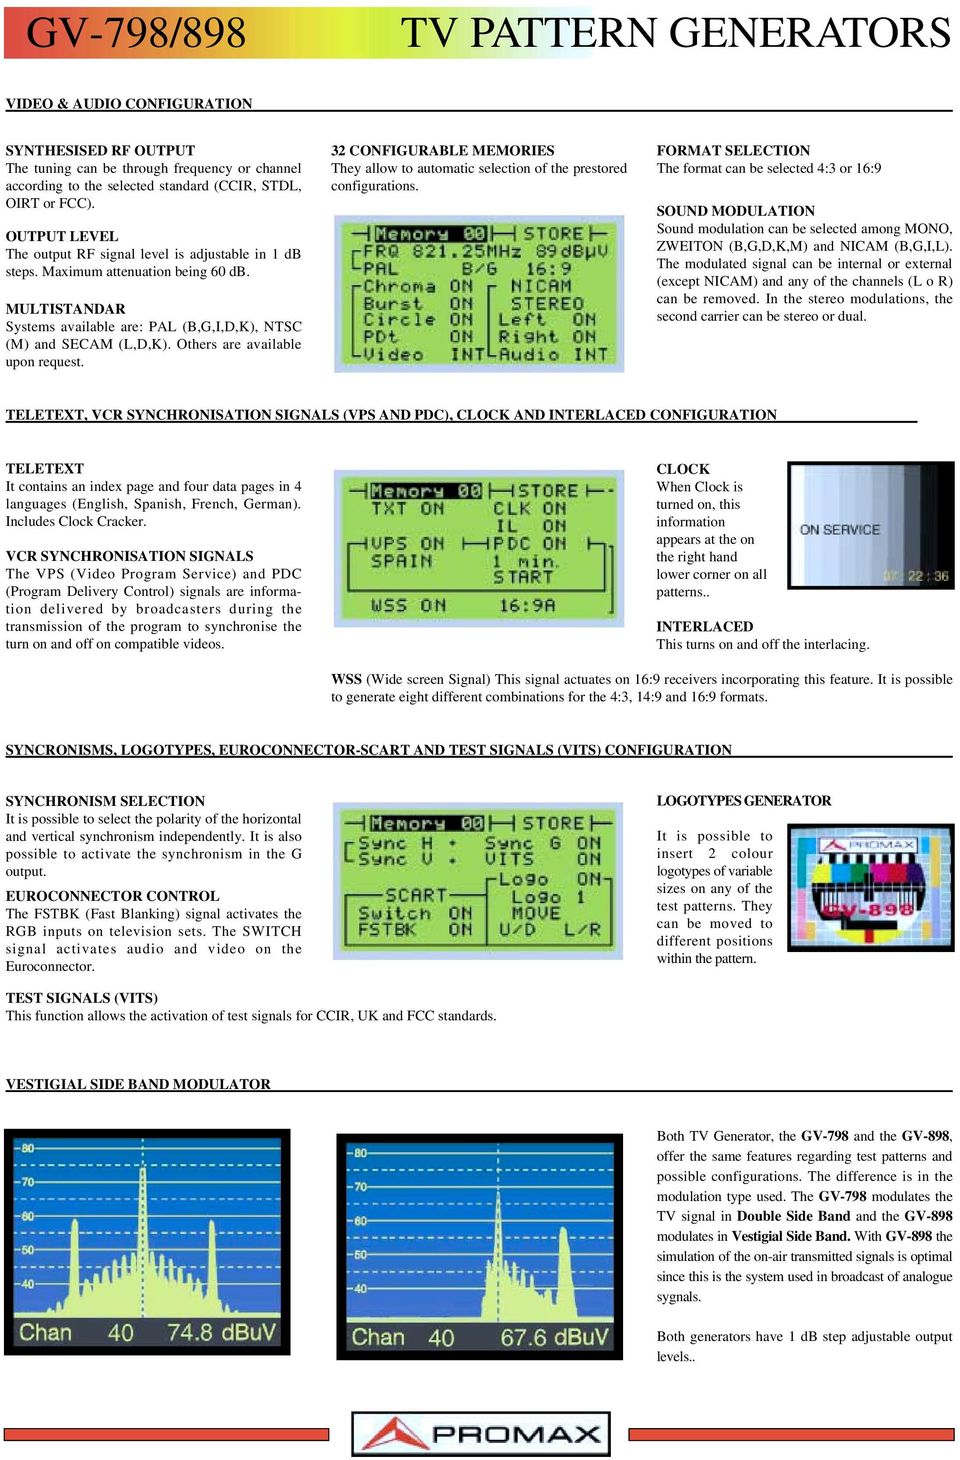 Tv Monitor Pattern Generators Pdf Test Generator With Wireless Model Others Are Available Upon Request 32 Configurable Memories They Allow To Automatic Selection Of The